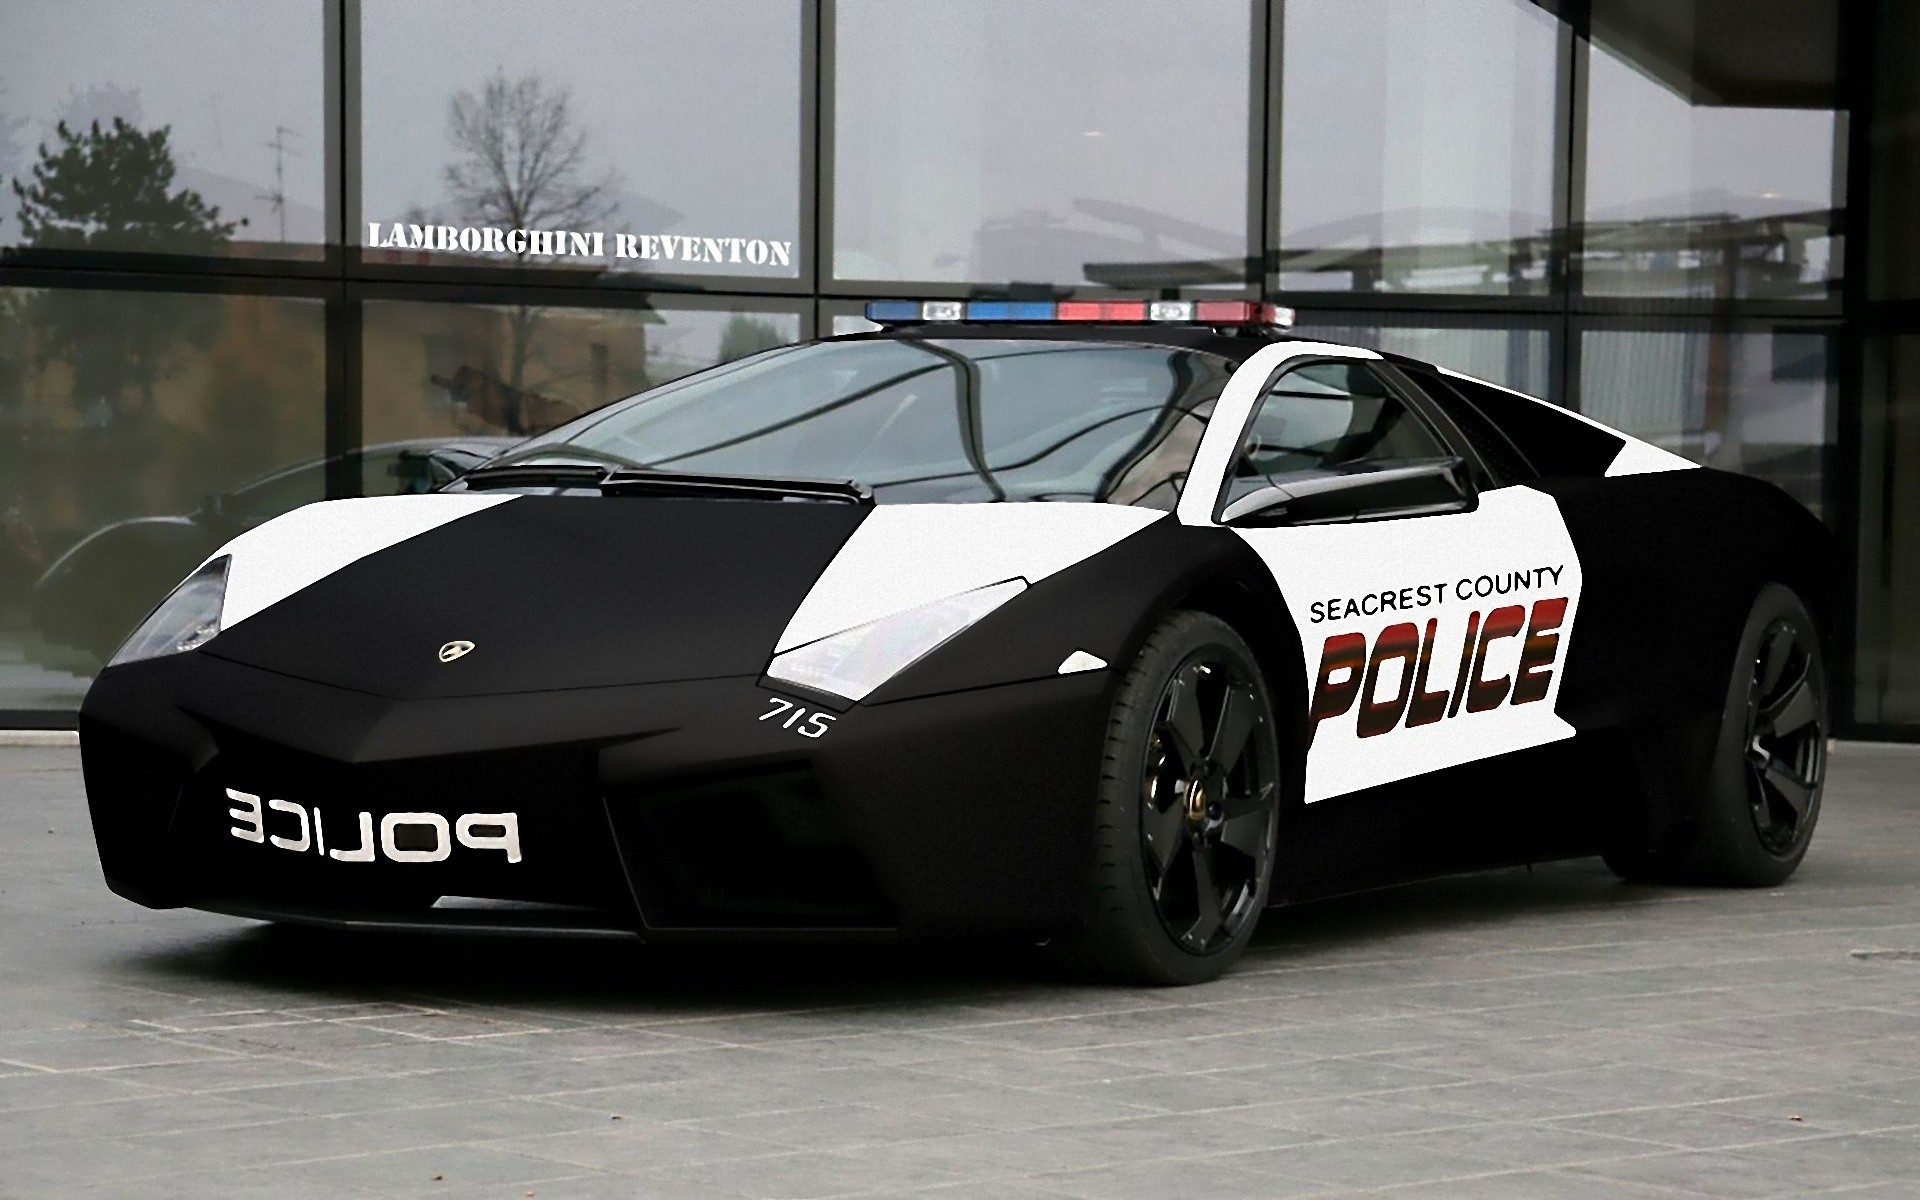 Lamborghini Police Cars Wallpaper Photos 324 Wallpaper with 1920x1200 1920x1200